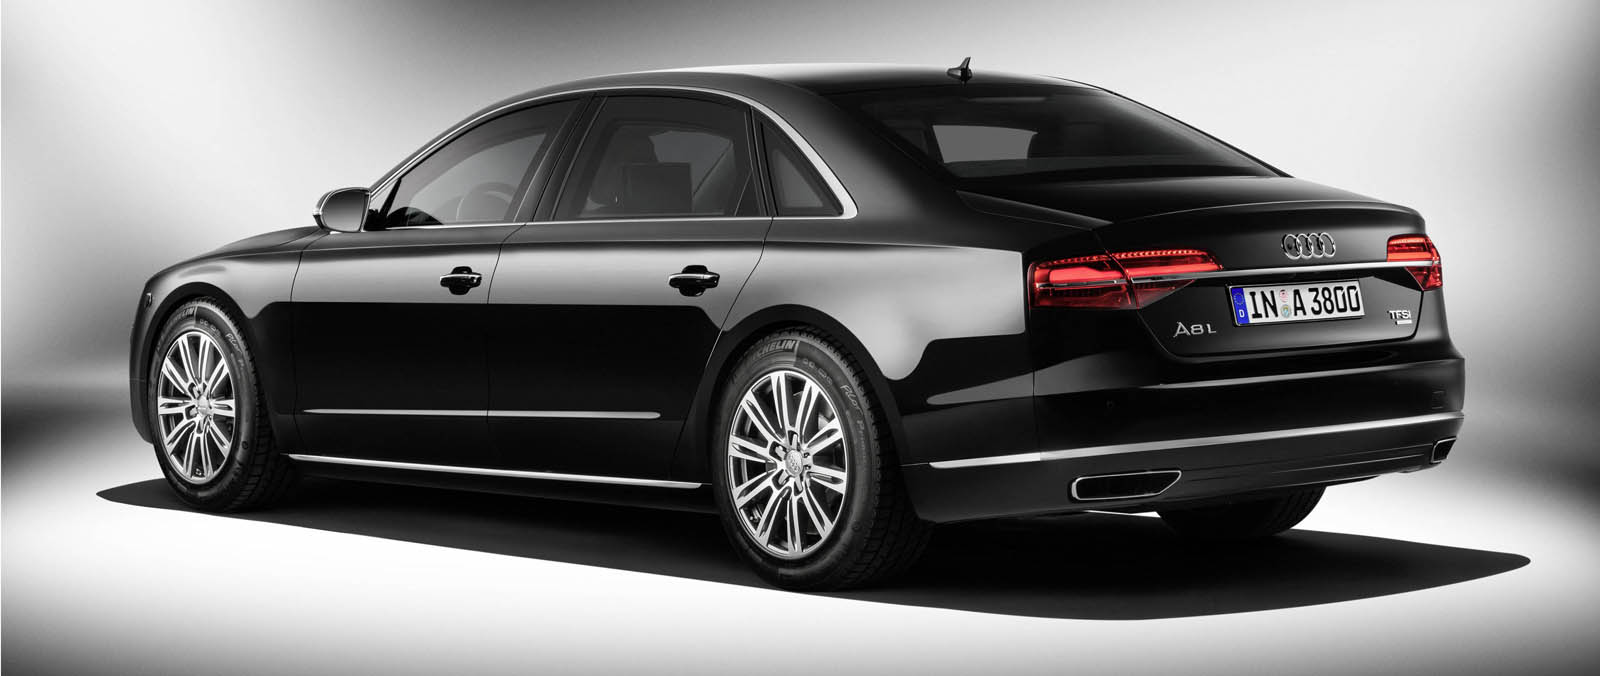 Audi S8 Interieur 2018 Audi A8 L Security | Car Photos Catalog 2019